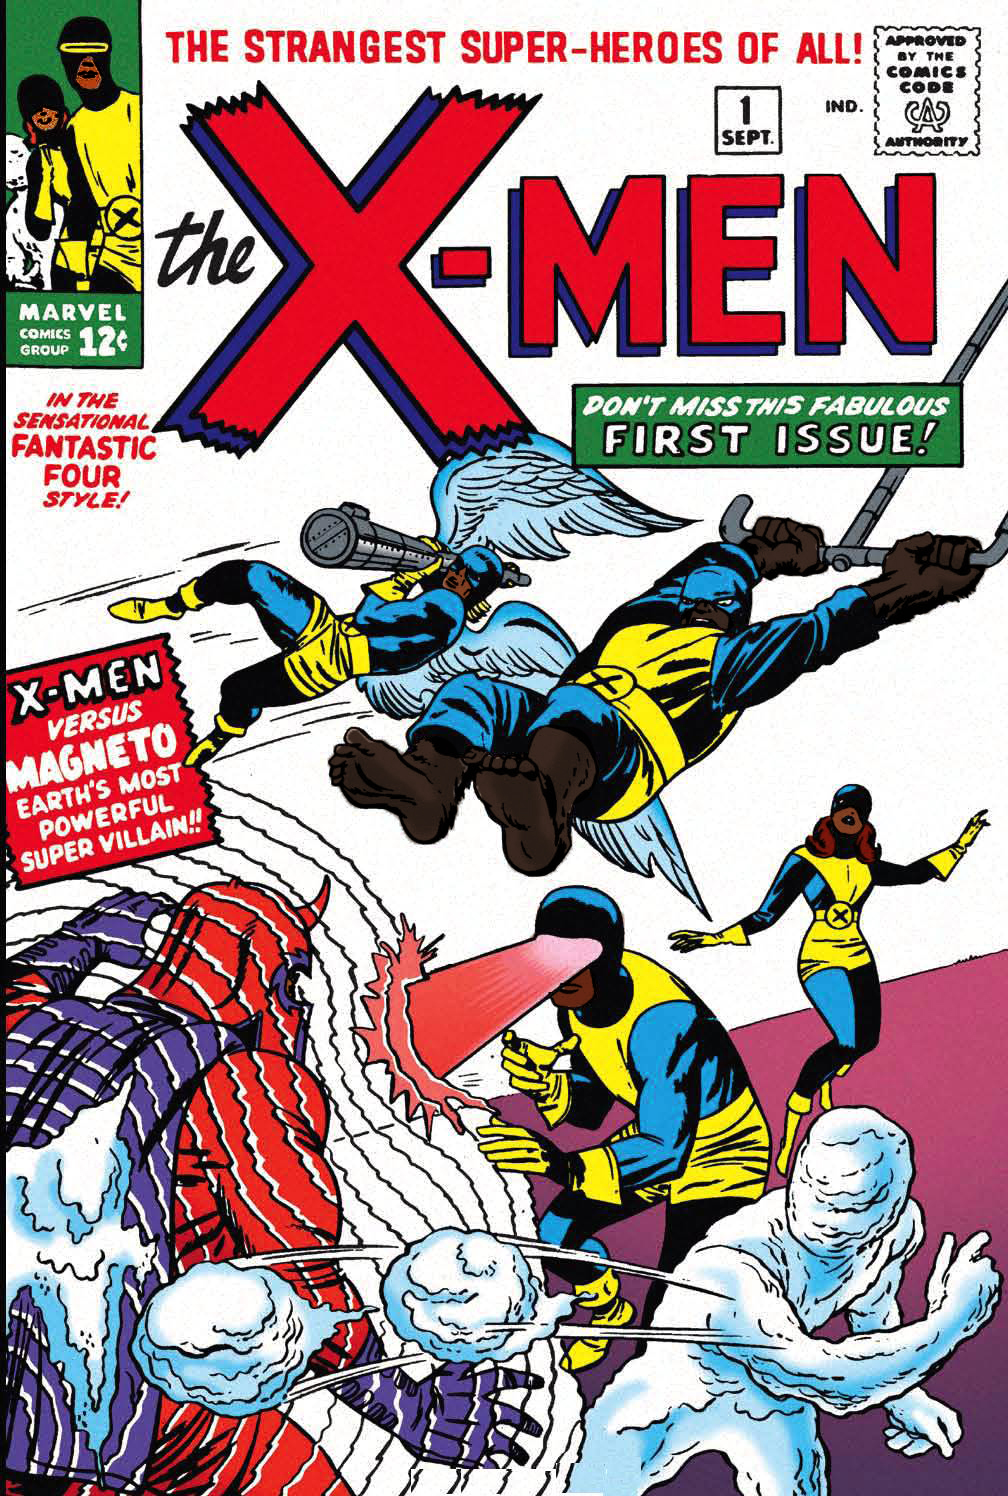 Image 1. Black X-Men